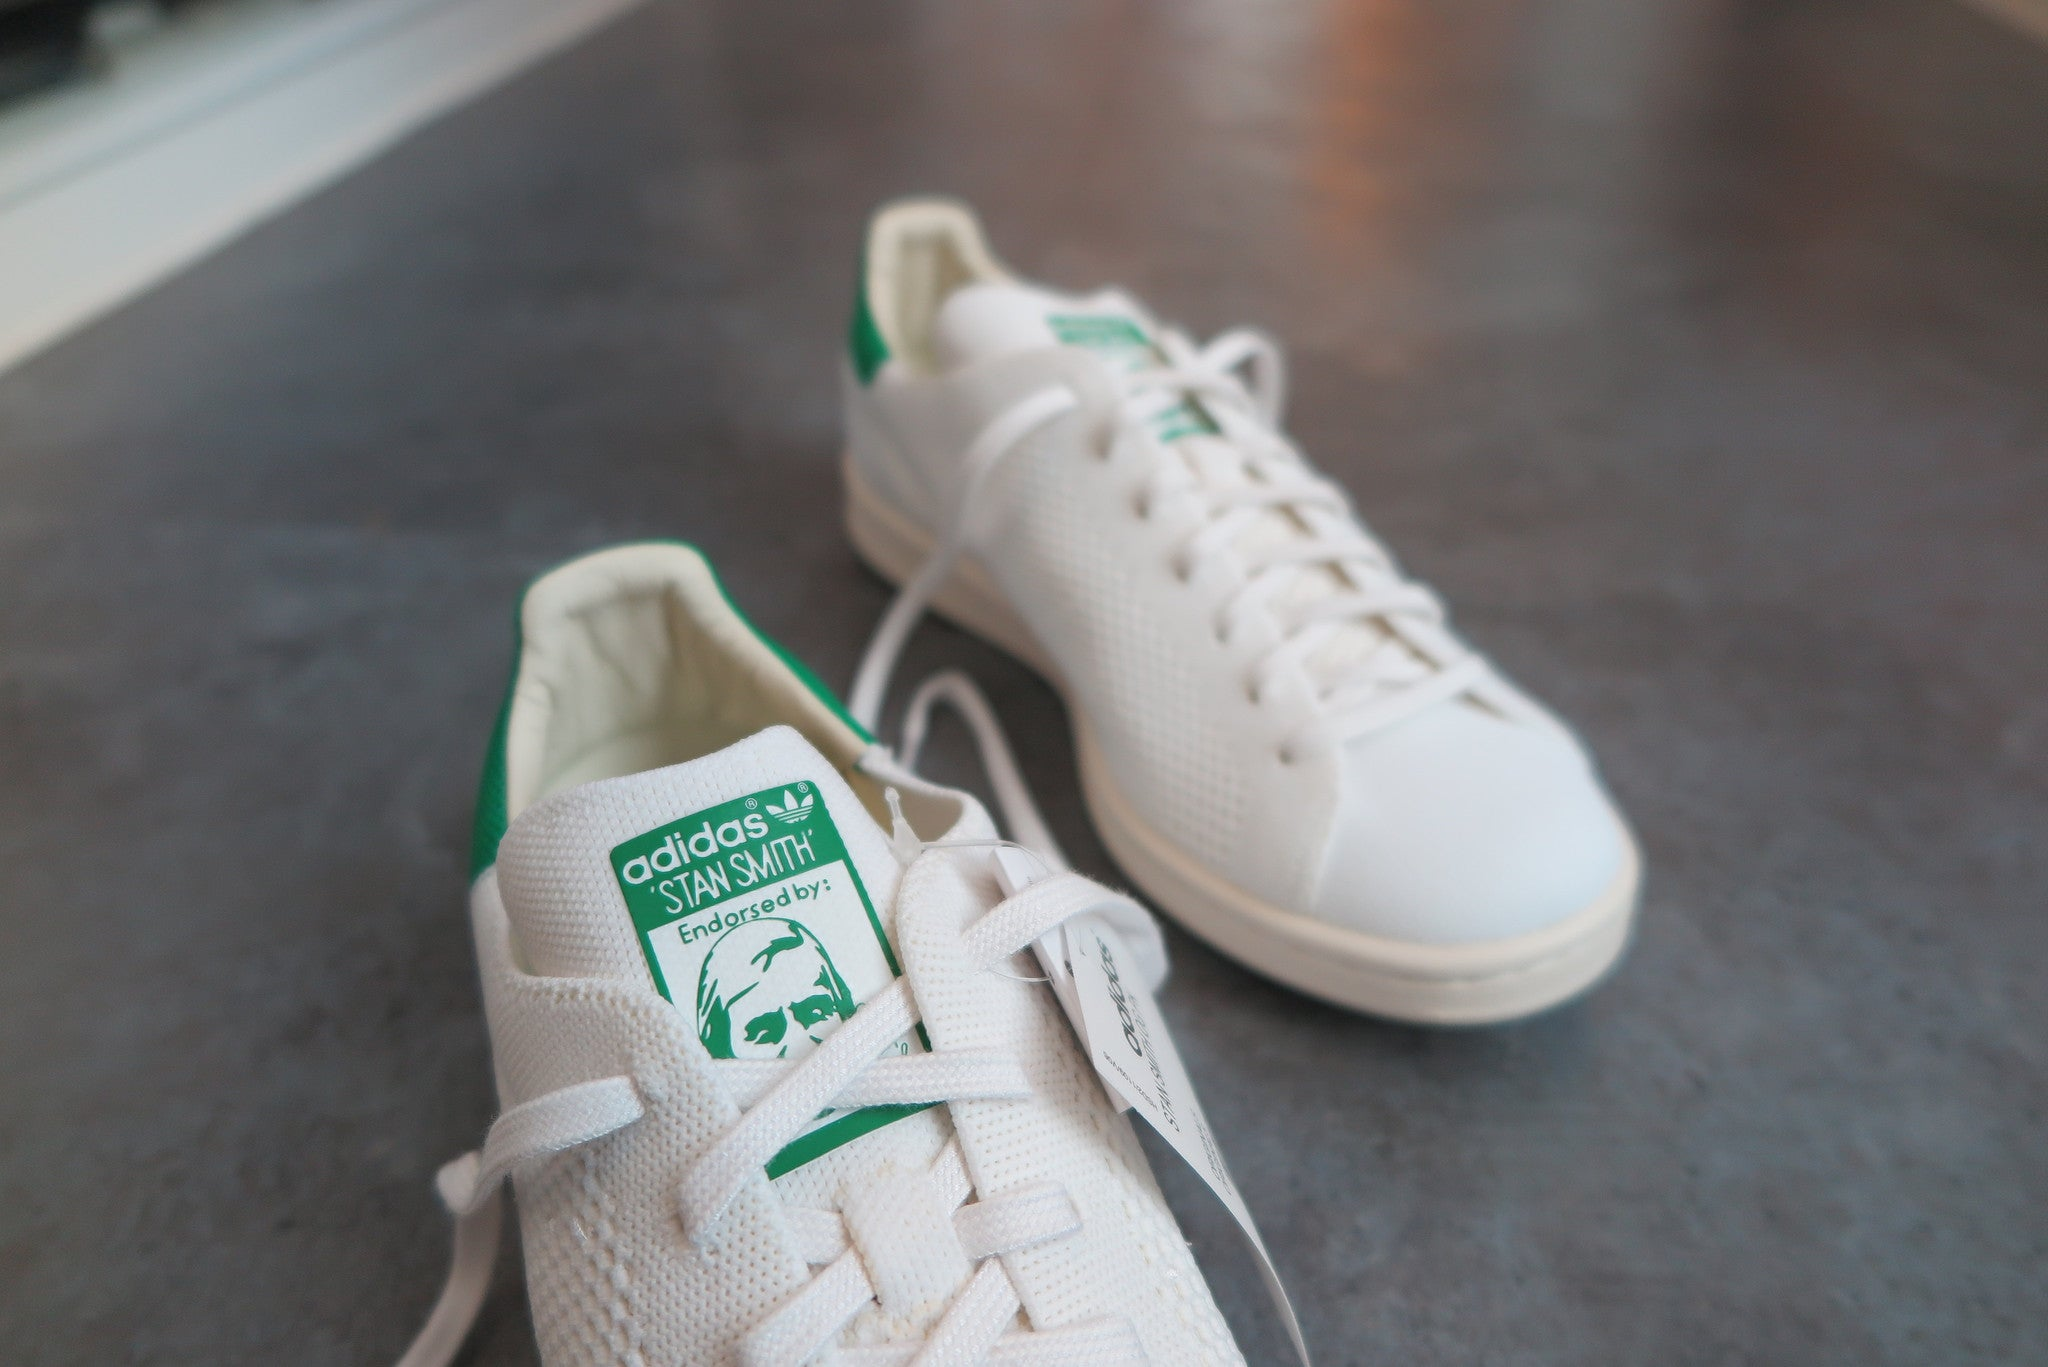 adidas Stan Smith Primeknit - Footwear White/Cream White/Green #S75146-Sneakers-Navy Selected Shop